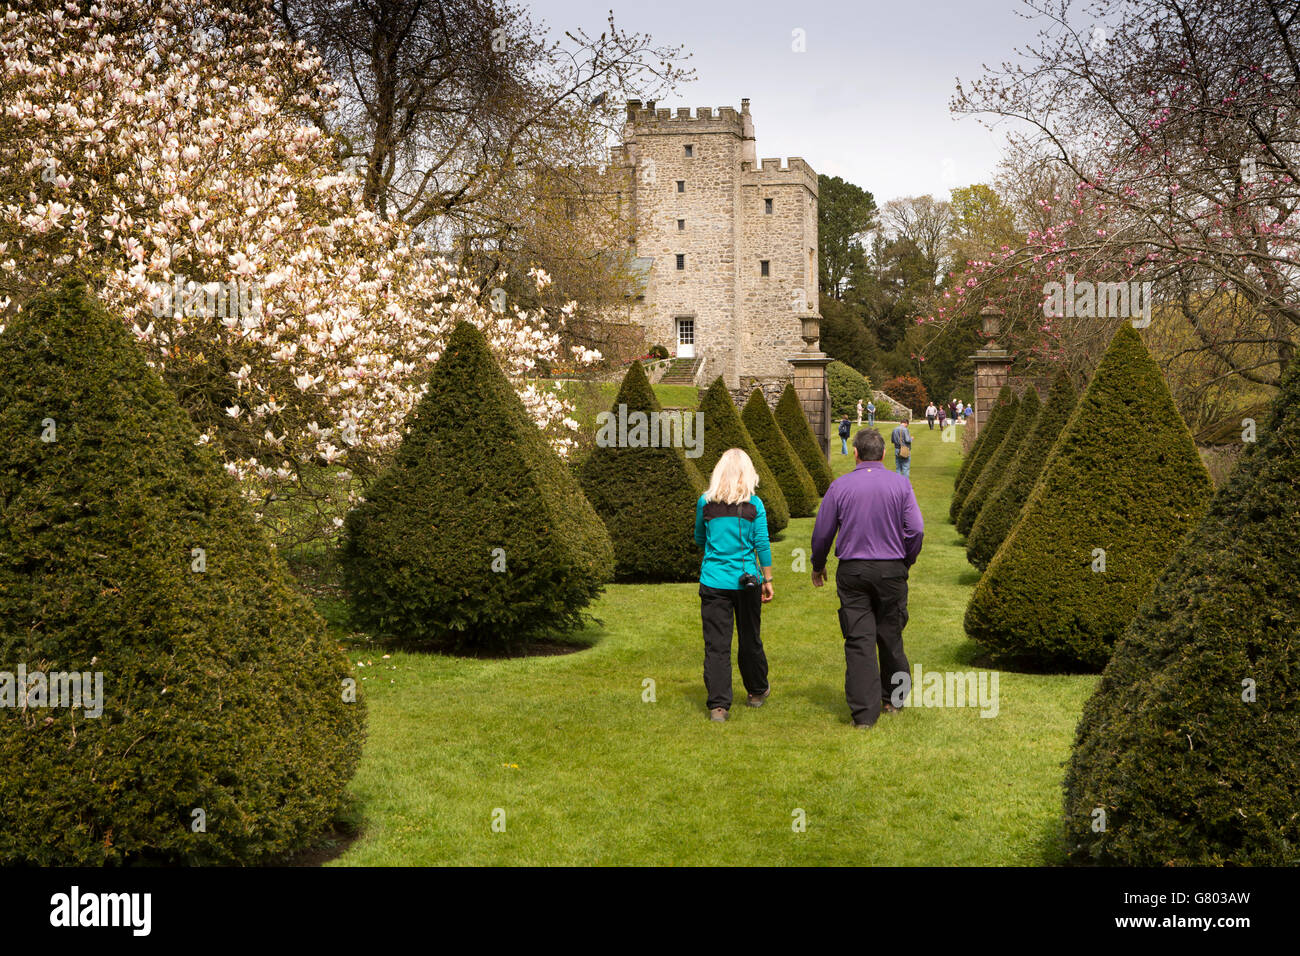 UK, Cumbria, Kendal, Sizergh, ancestral home to the Strickland family, visitors in topiary garden - Stock Image